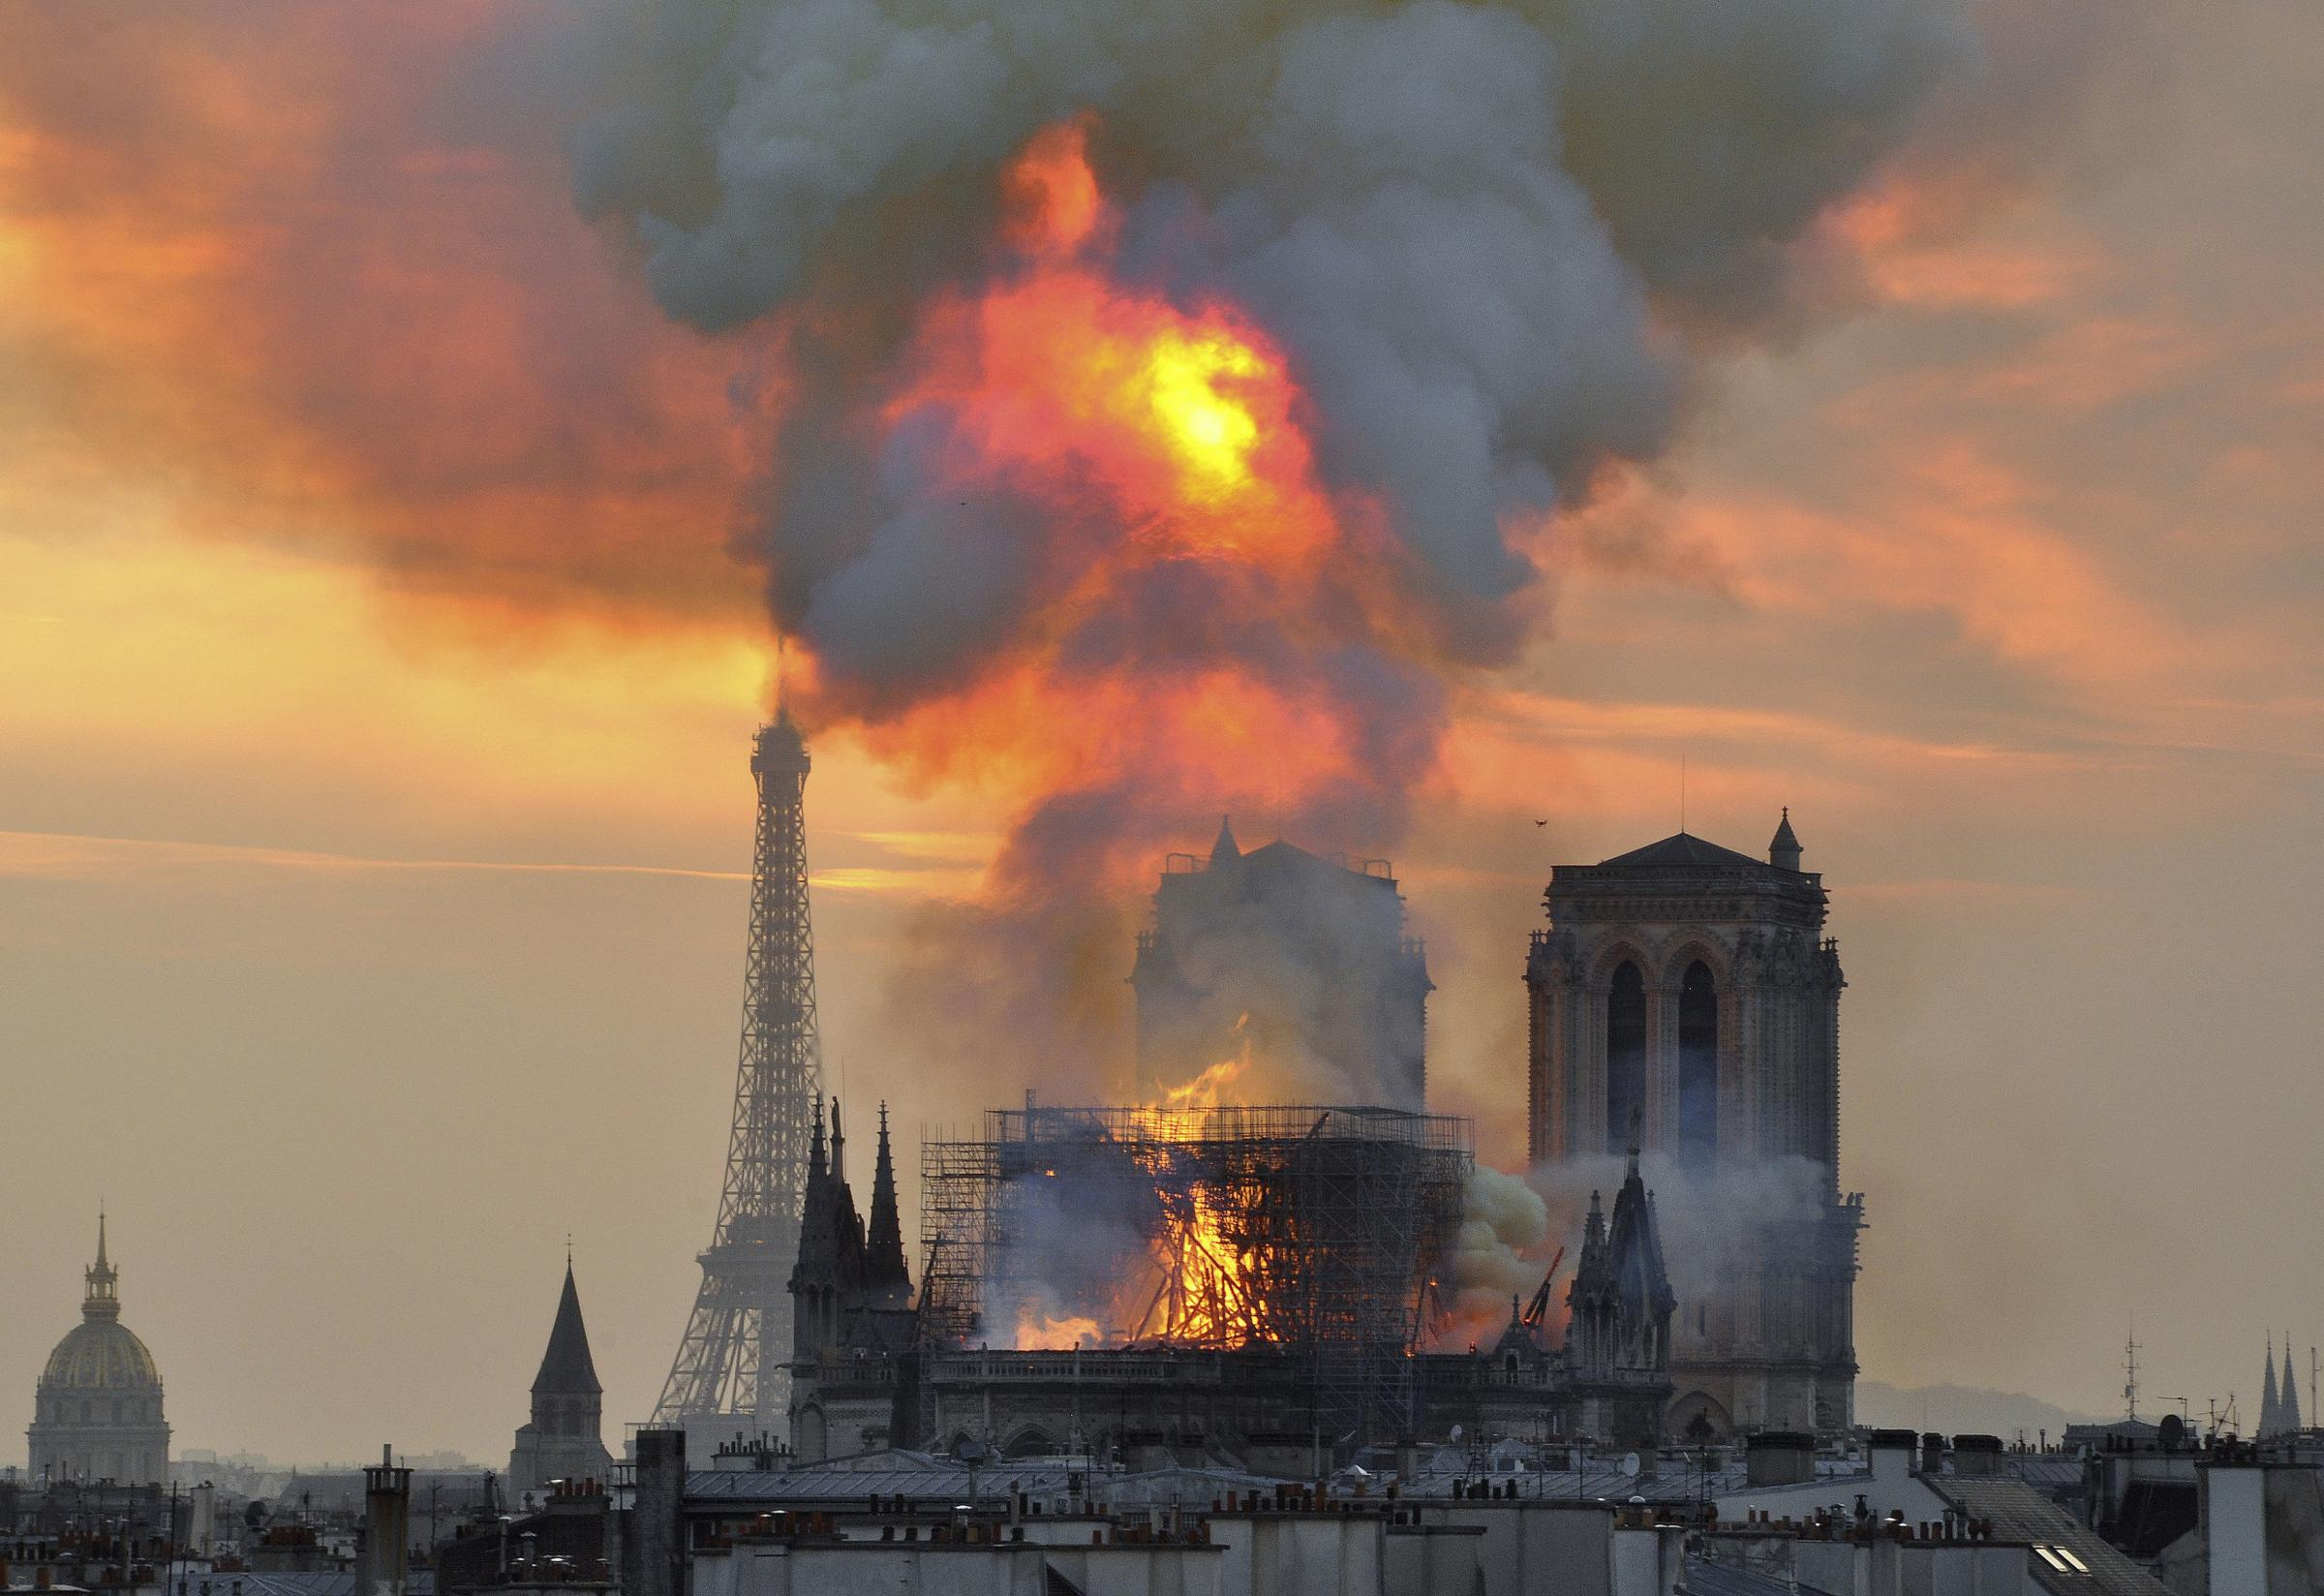 In this image made available on Tuesday April 16, 2019 flames and smoke rise from the blaze at Notre Dame cathedral in Paris, Monday, April 15, 2019. An inferno that raged through Notre Dame Cathedral for more than 12 hours destroyed its spire and its ro